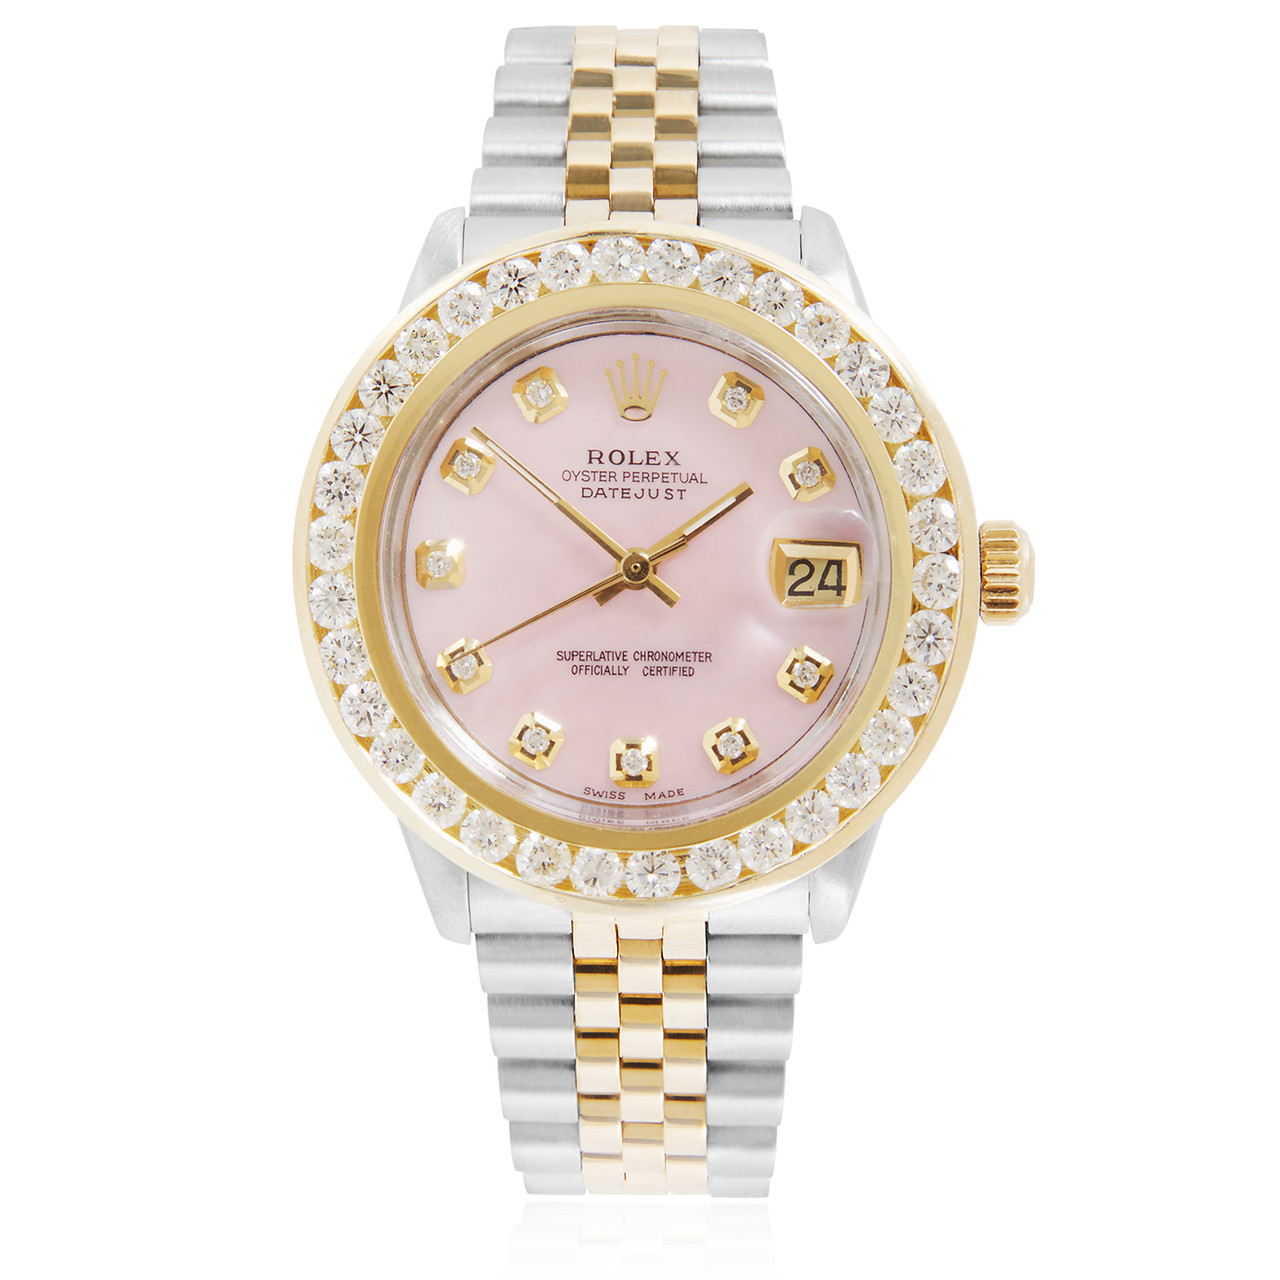 Rolex Ladies Watches Rolex Datejust 4ct Diamond Automatic Women S Watch